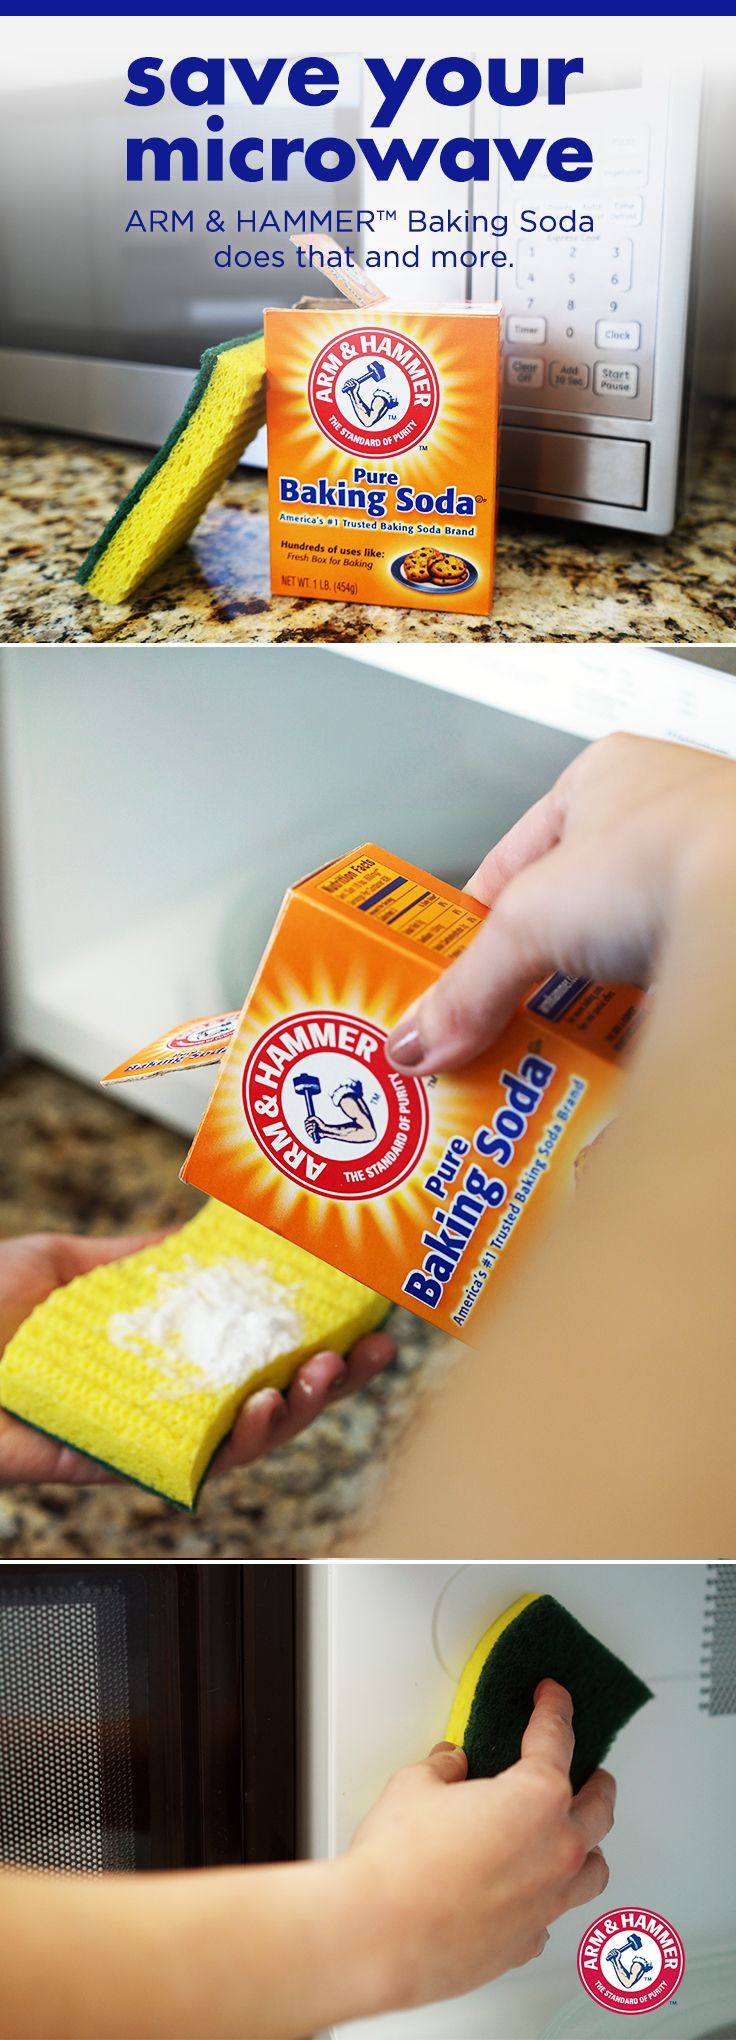 Want to get tough on stubborn microwave gunk? Just sprinkle some ARM & HAMMER™ Baking Soda on a damp sponge and wipe inside and out — then rinse well. For another simple solution, keep a box of ARM & HAMMER™ Baking Soda in your microwave between uses to keep it smelling fresh and clean.